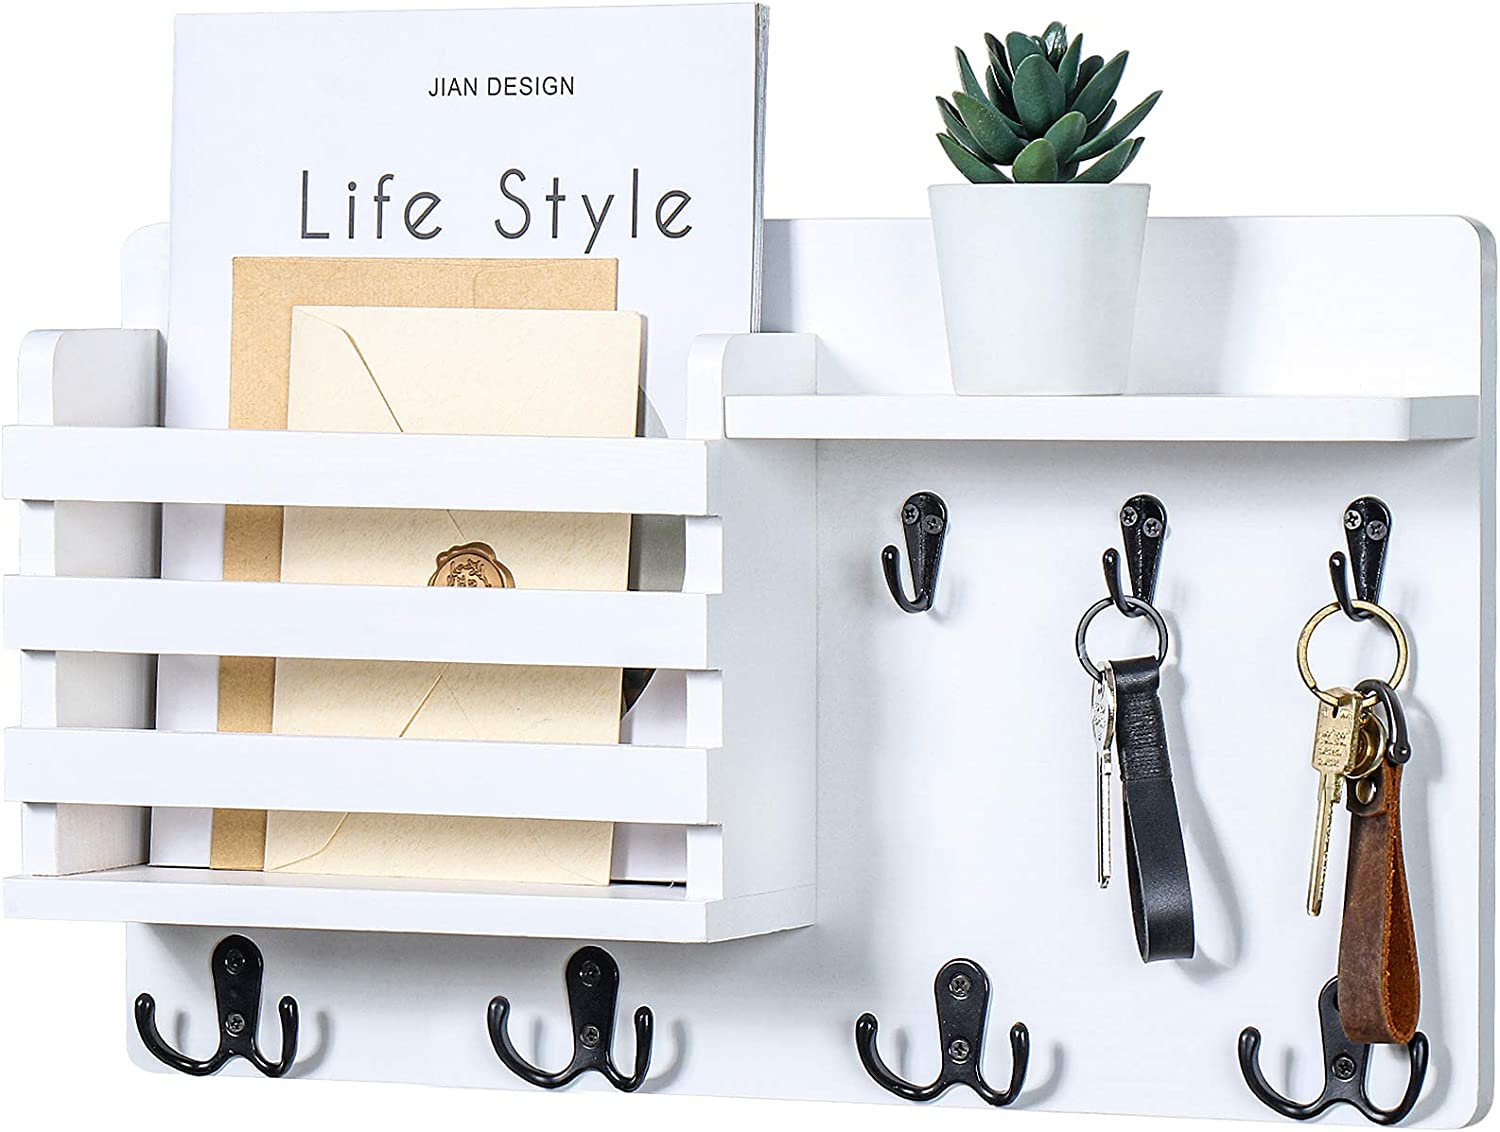 """Mail Holder for Wall – Mail Organizer with Key Hooks for Hallway Kitchen Farmhouse Decor – Letter Sorter Made of Natural Pine with Floating Shelf and Flush Mount Hardware (16.8"""" x 10"""" x 3.2"""")"""